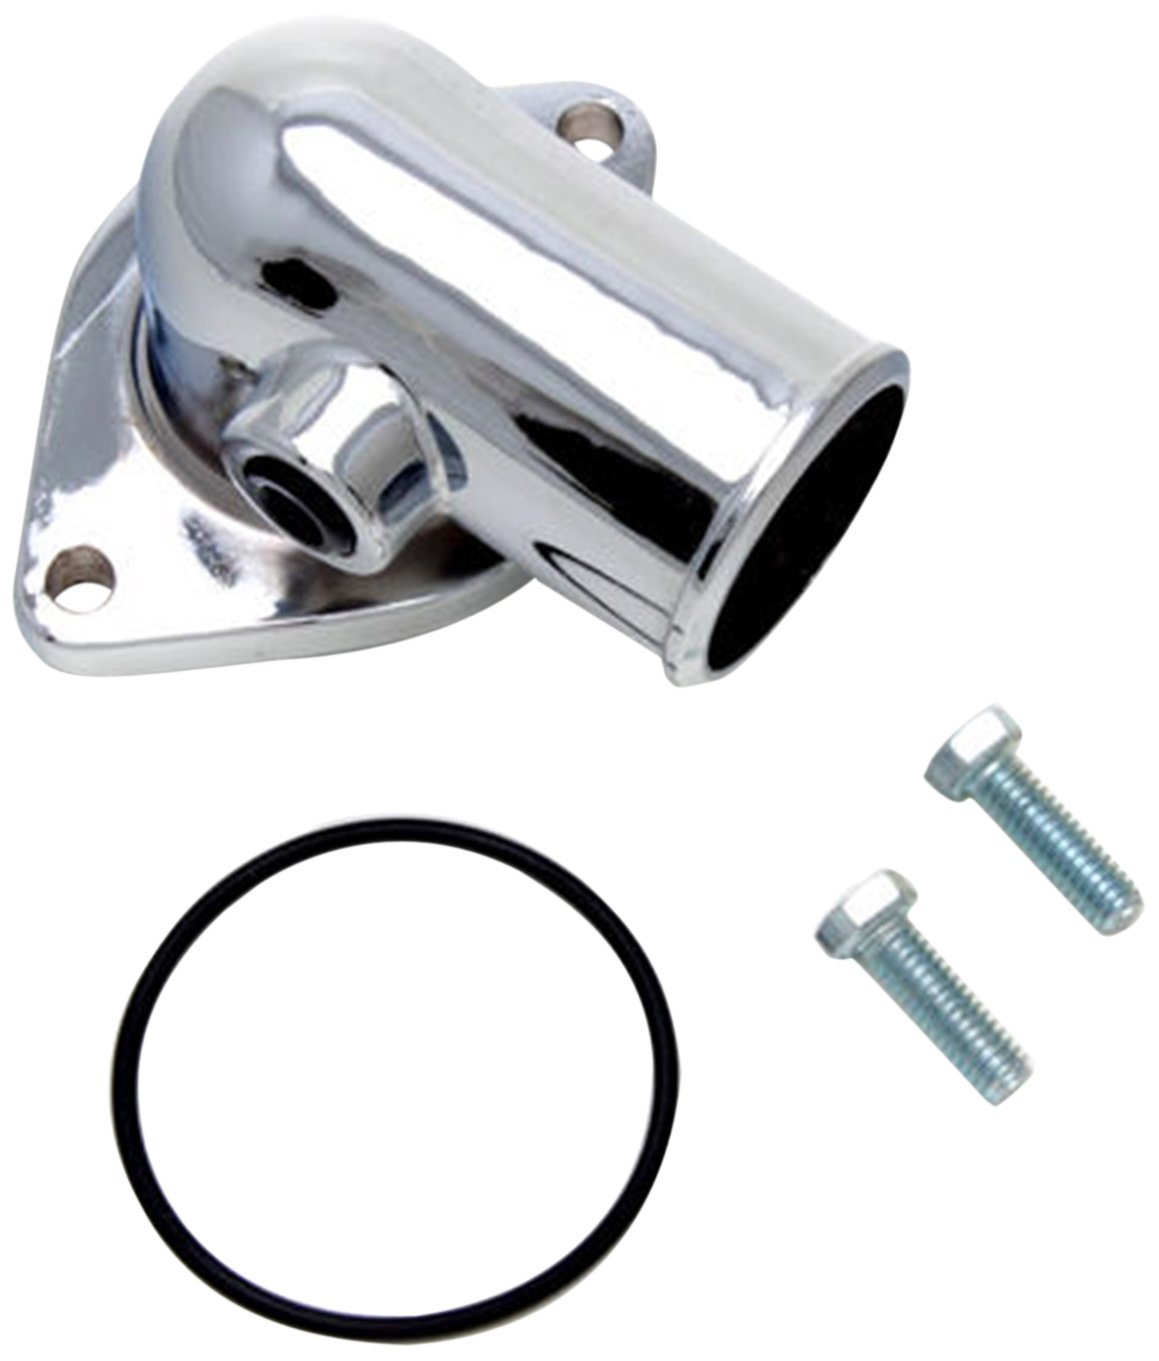 Trans-Dapt 9524 Chrome O-Ring Water Neck Trans-Dapt Performance